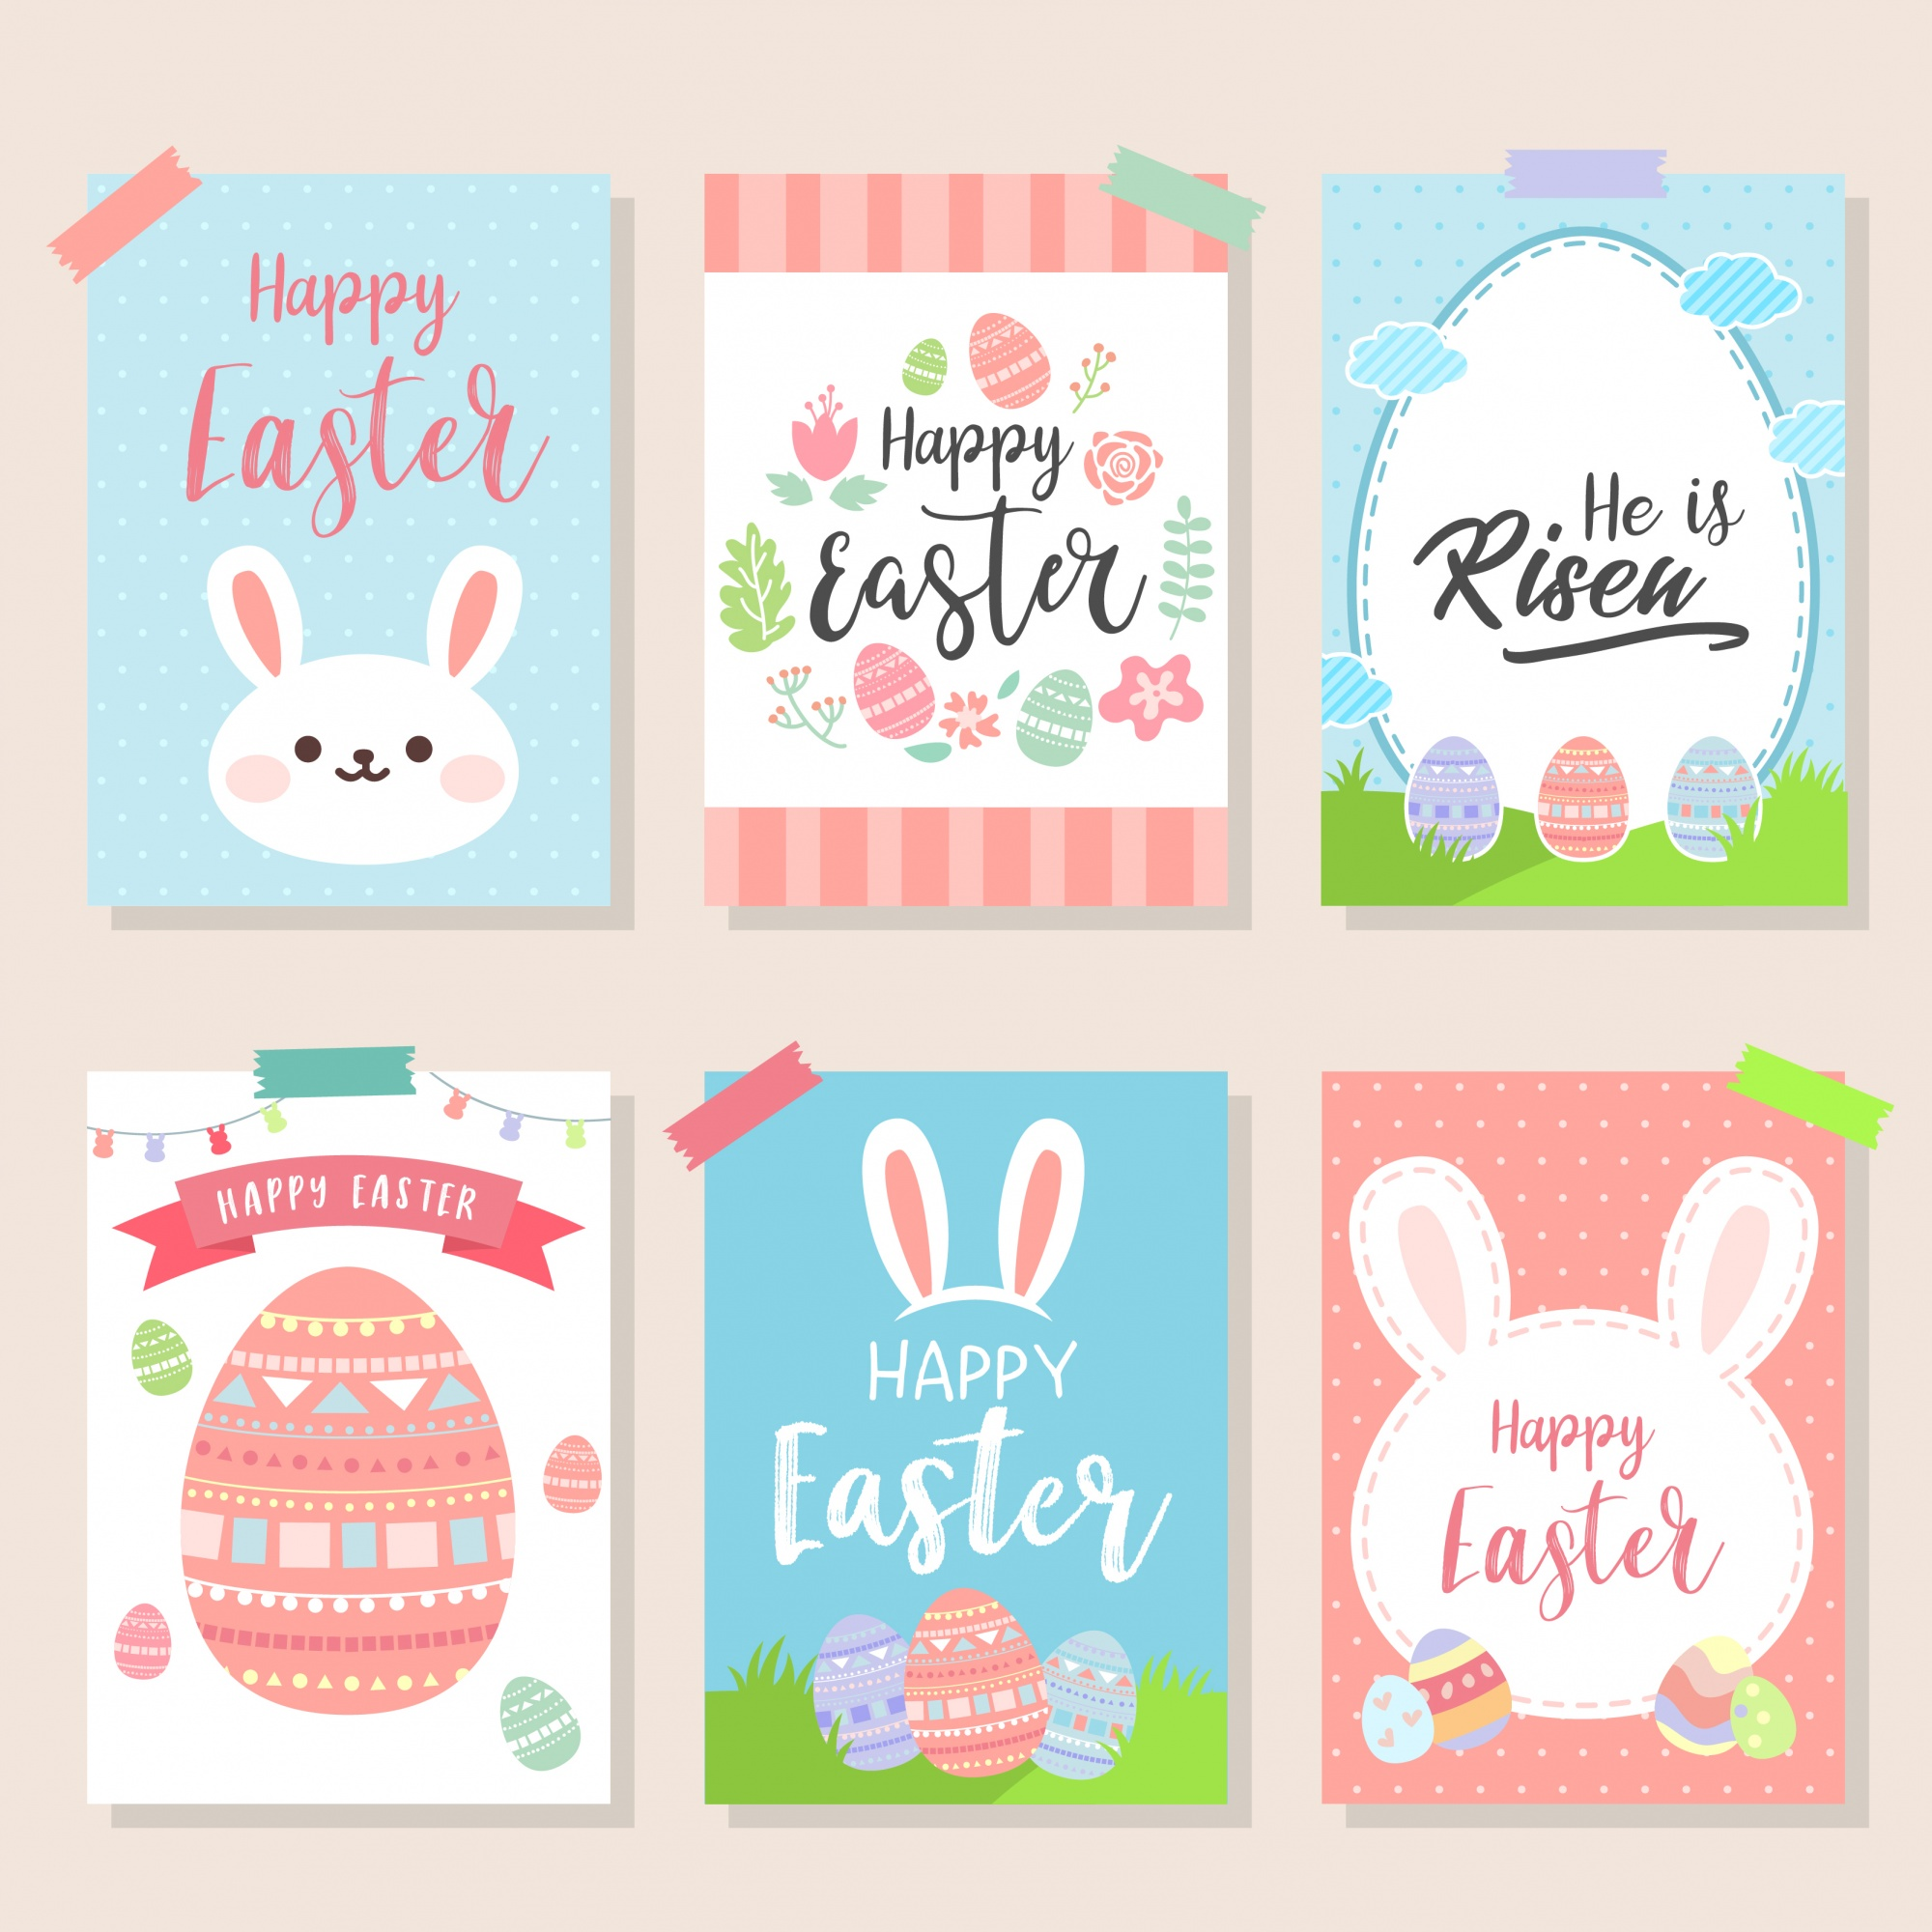 Happy Easter Greeting Card Collection